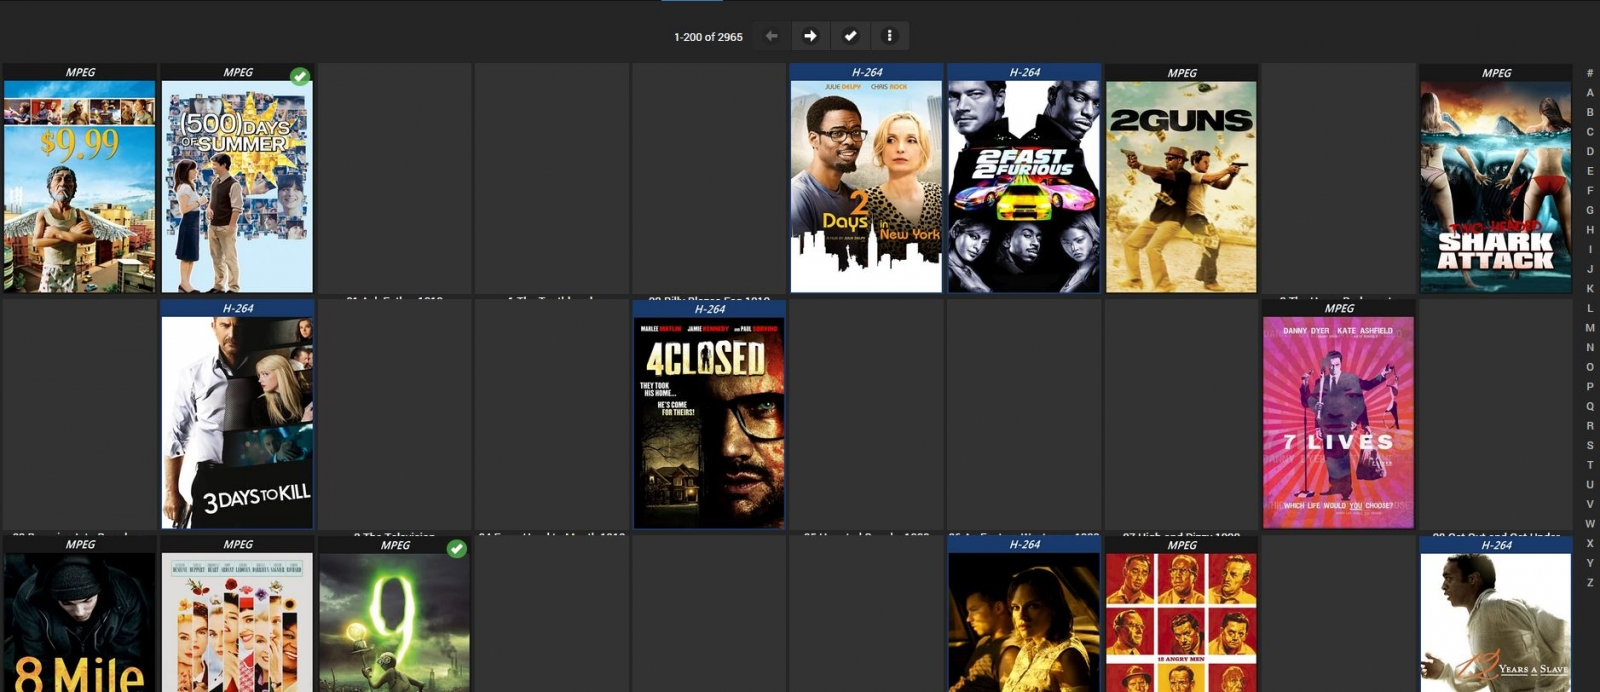 Unset (mixed content) showing in Movie library? - General/Windows